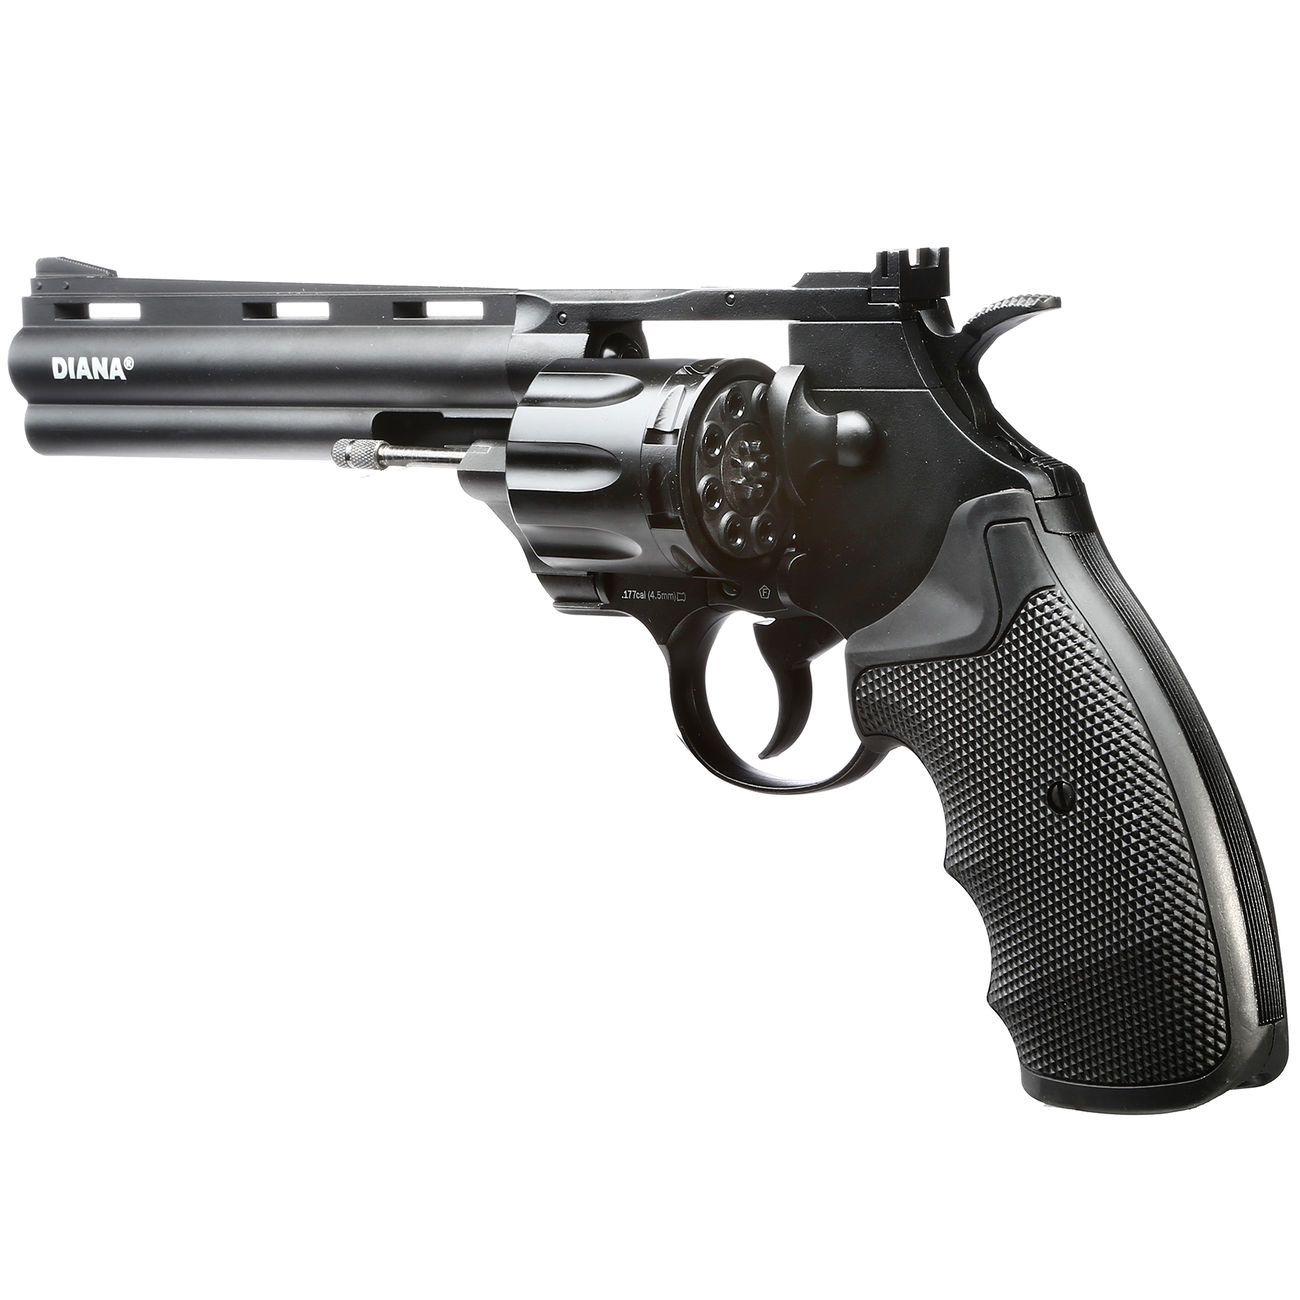 Diana Raptor 6 CO2 Revolver Kal. 4,5mm Diabolo 3